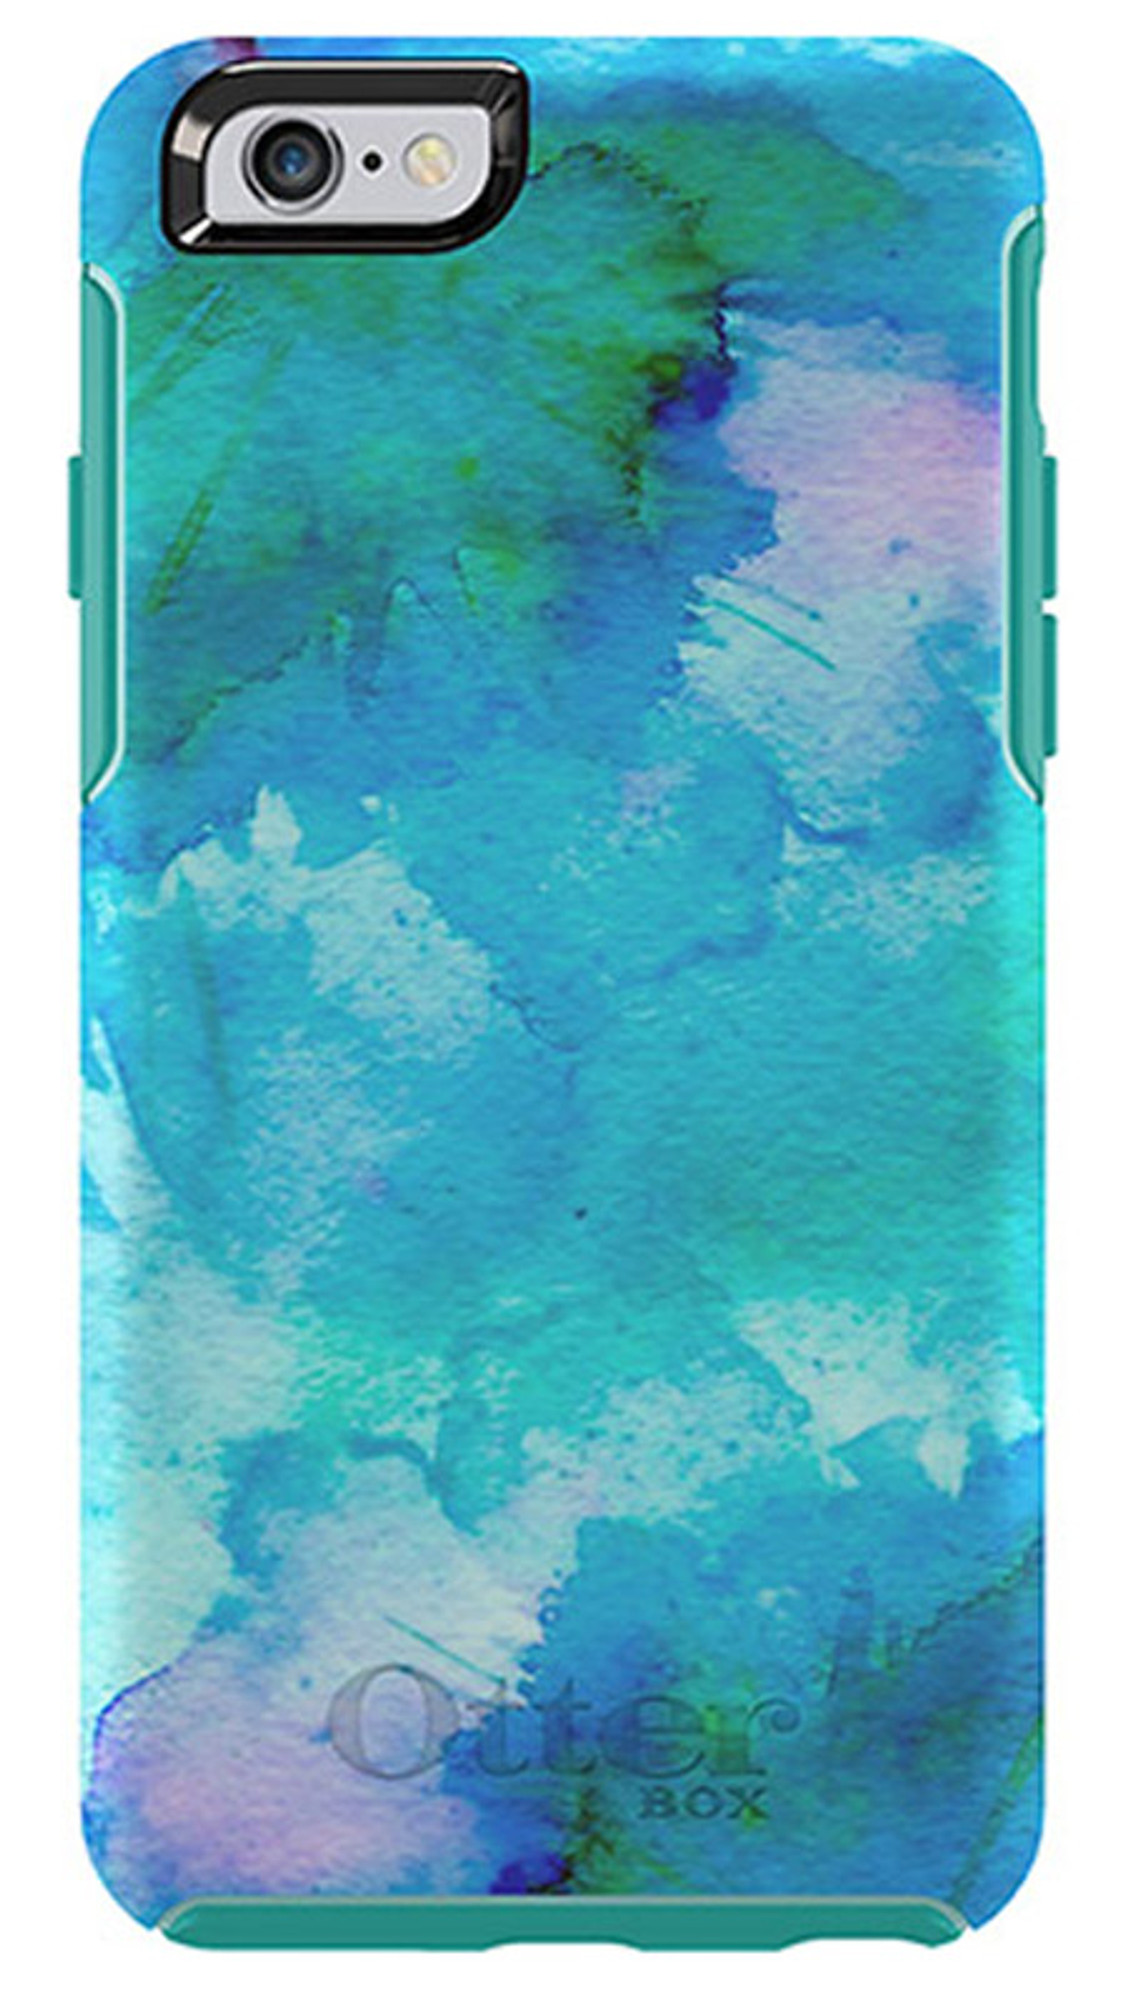 new style d34d5 29903 Otterbox Symmetry Series Case For Iphone 6 & Iphone 6s - Floral Pond -  77-50333